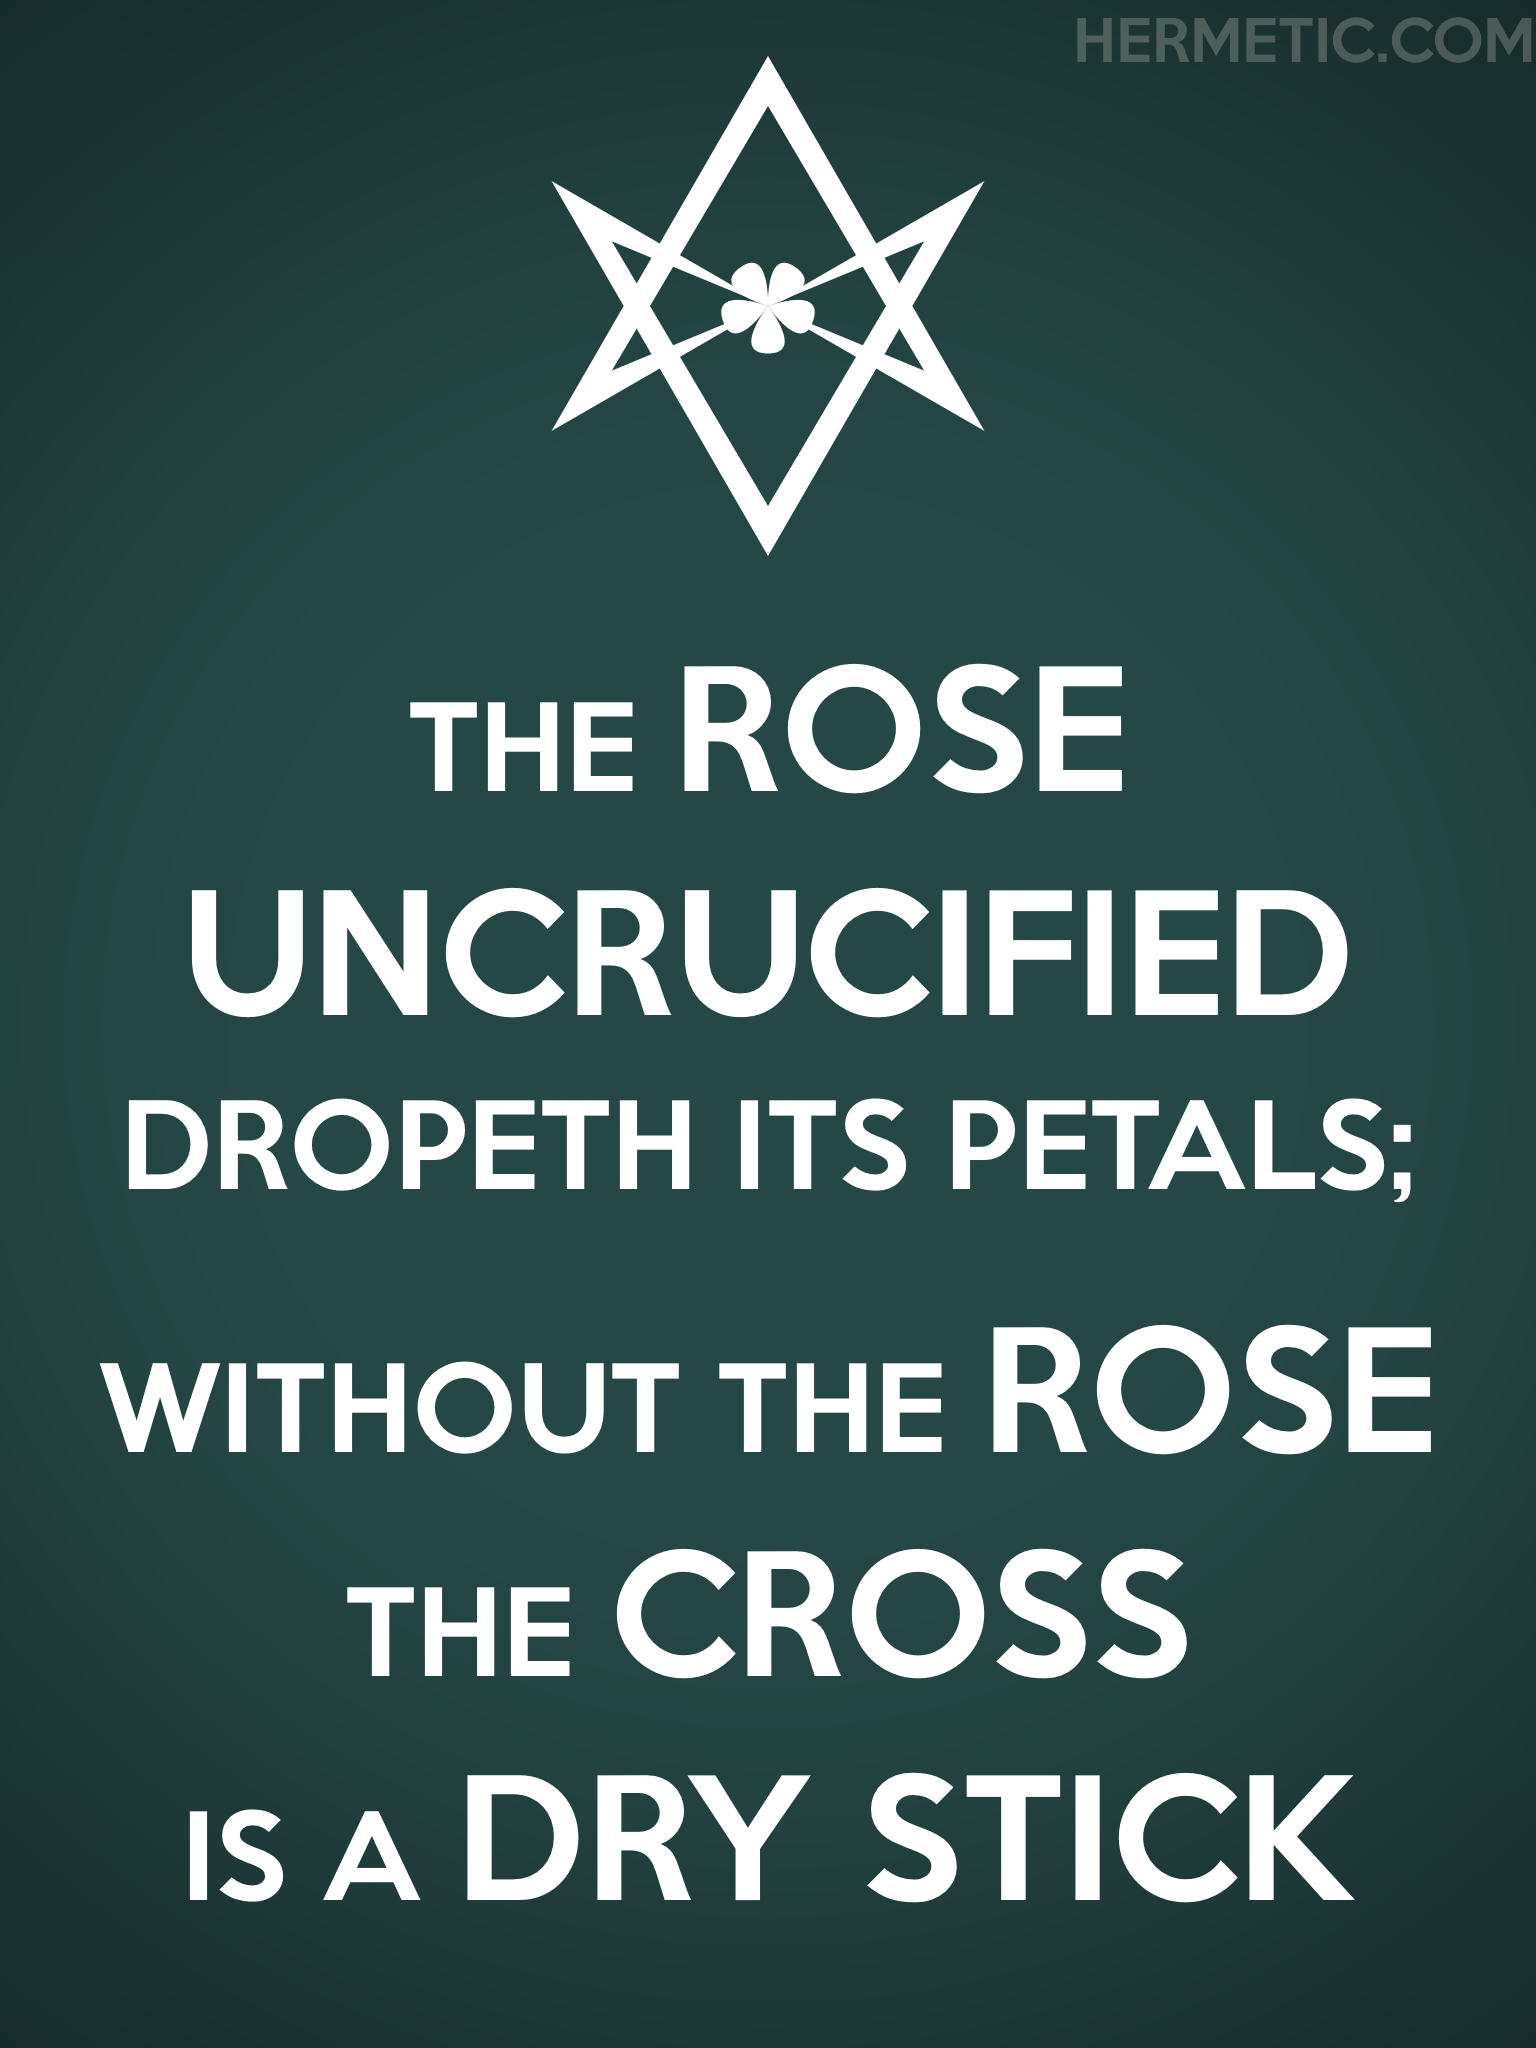 Unicursal UNCRUCIFIED DRY STICK Propaganda Poster from Hermetic Library Office of the Ministry of Information